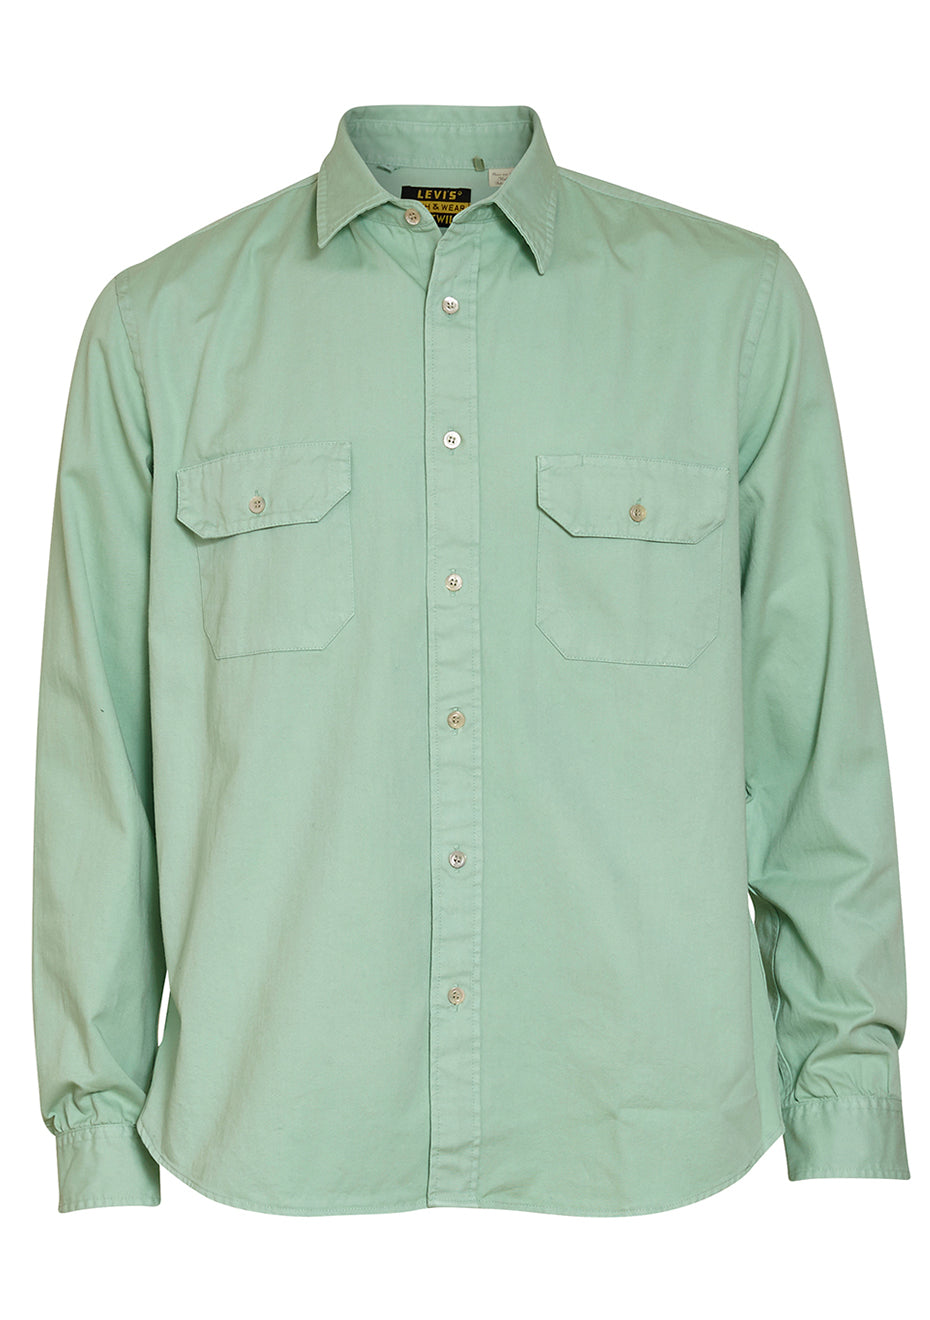 Vintage Clothing Tab Twill Shirt